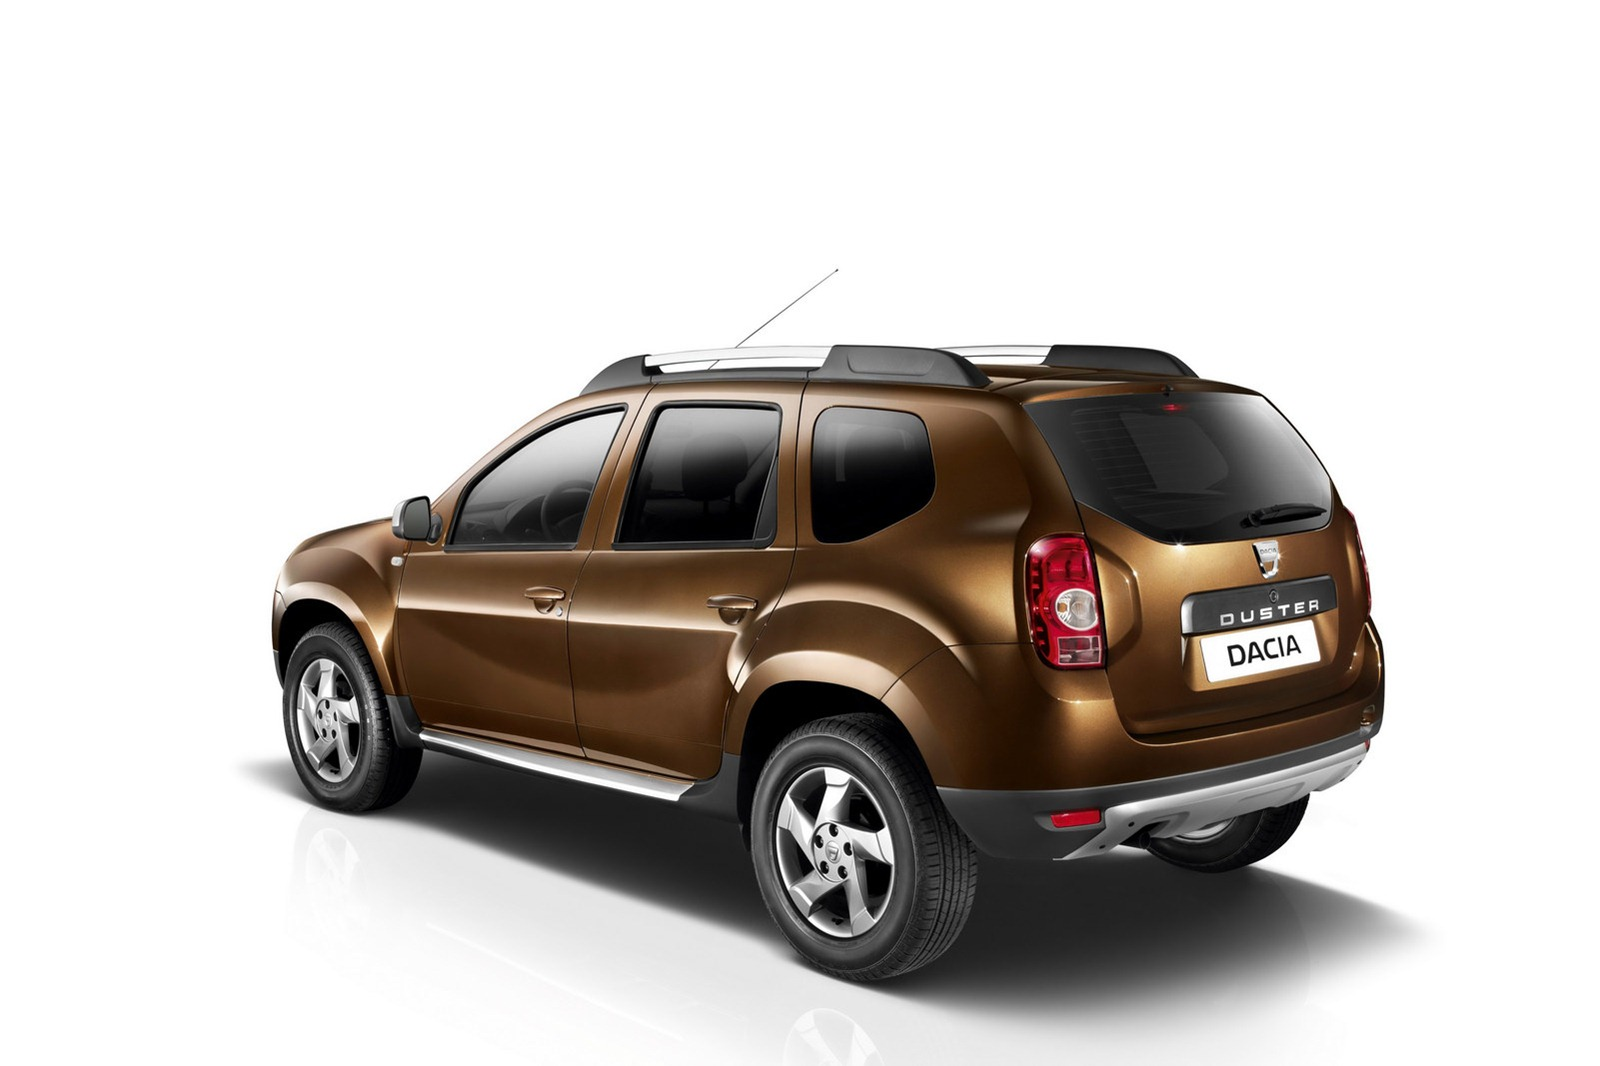 dacia duster is the uk 39 s cheapest suv at 8 995 otr telescars. Black Bedroom Furniture Sets. Home Design Ideas